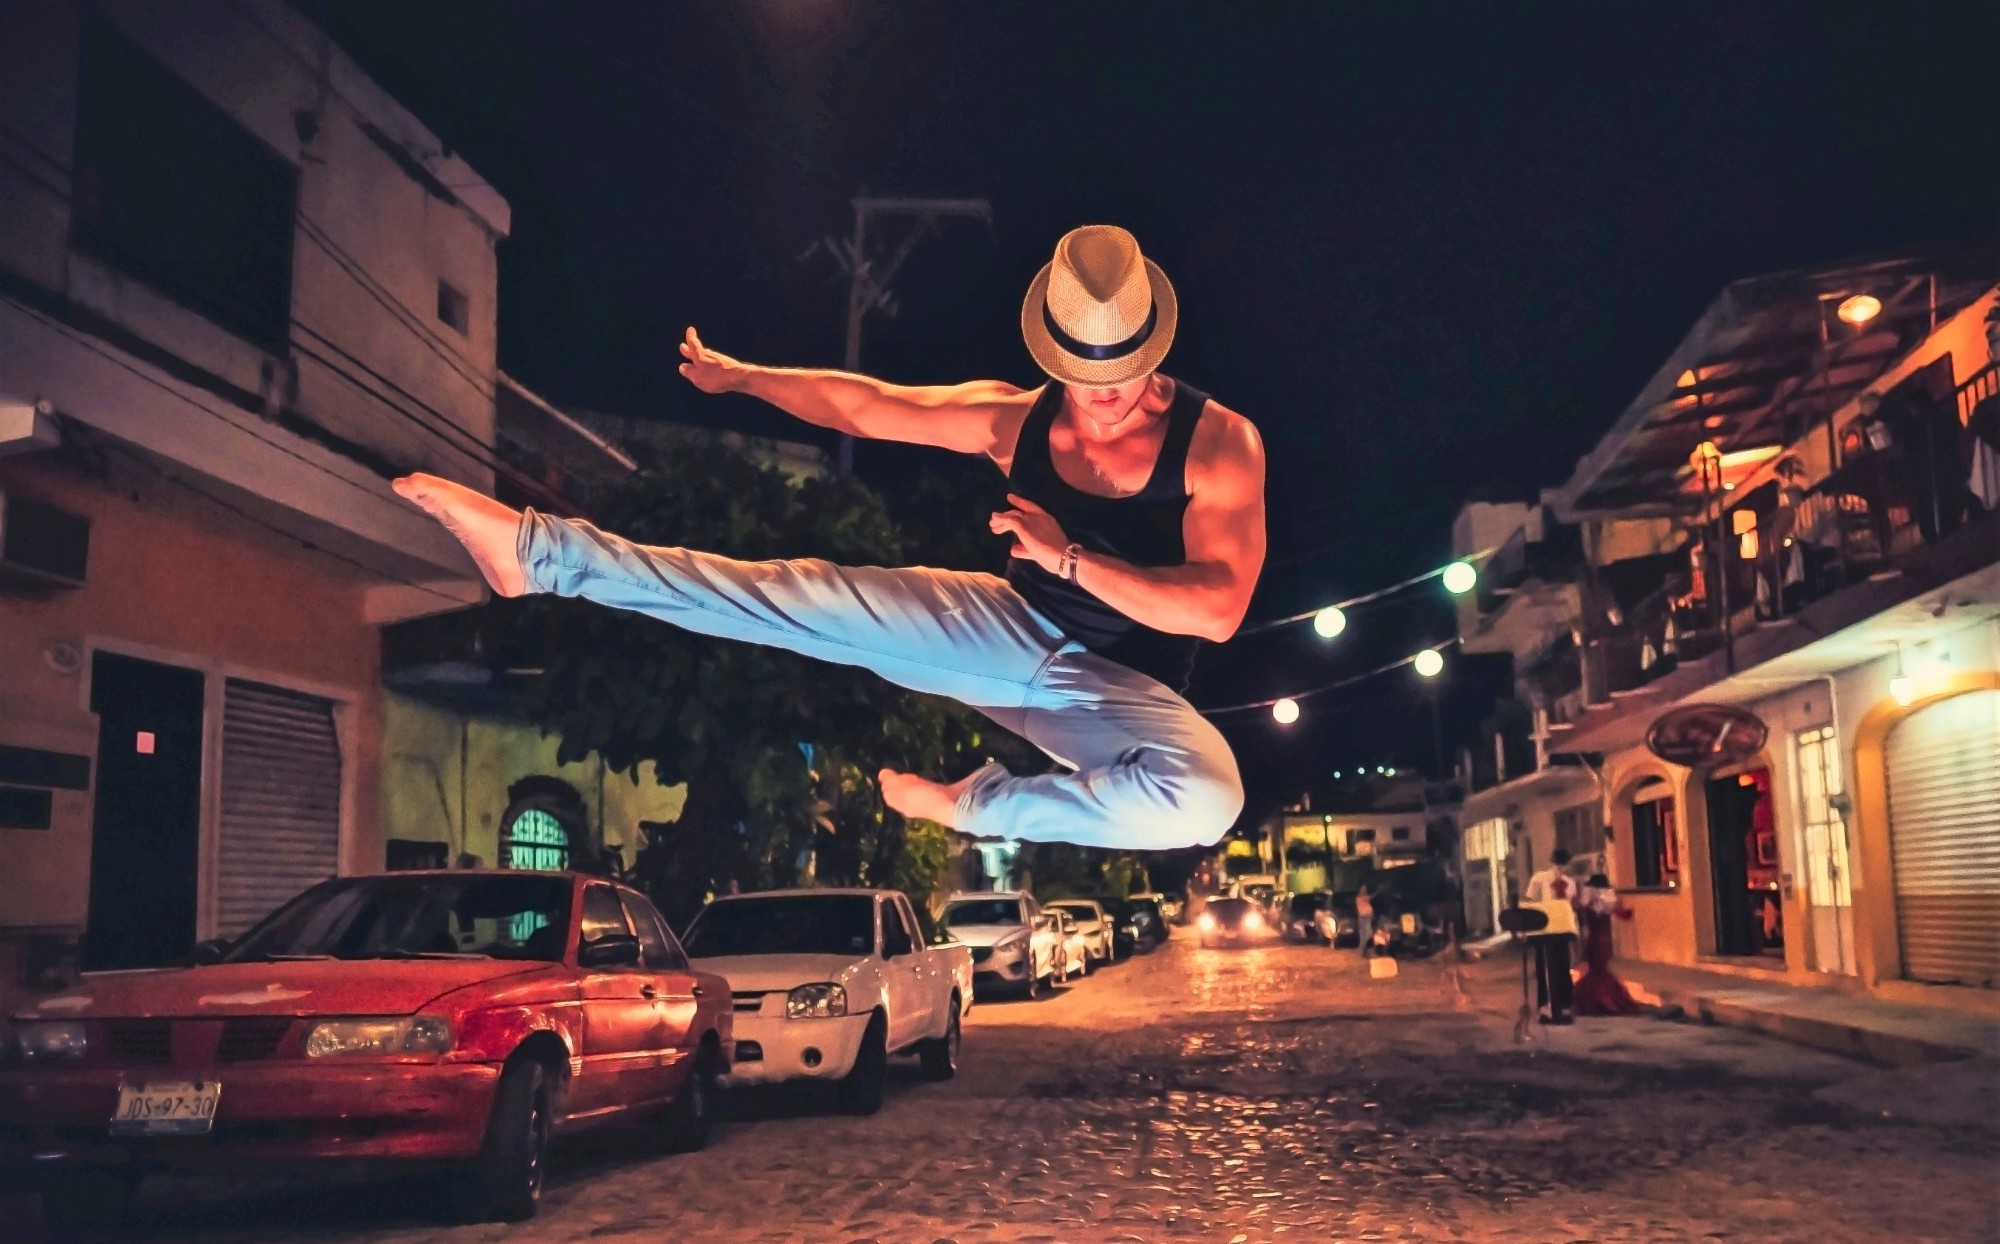 Man wearing hat, black shirt, blue jeans leaping in the air in middle of cobblestone street